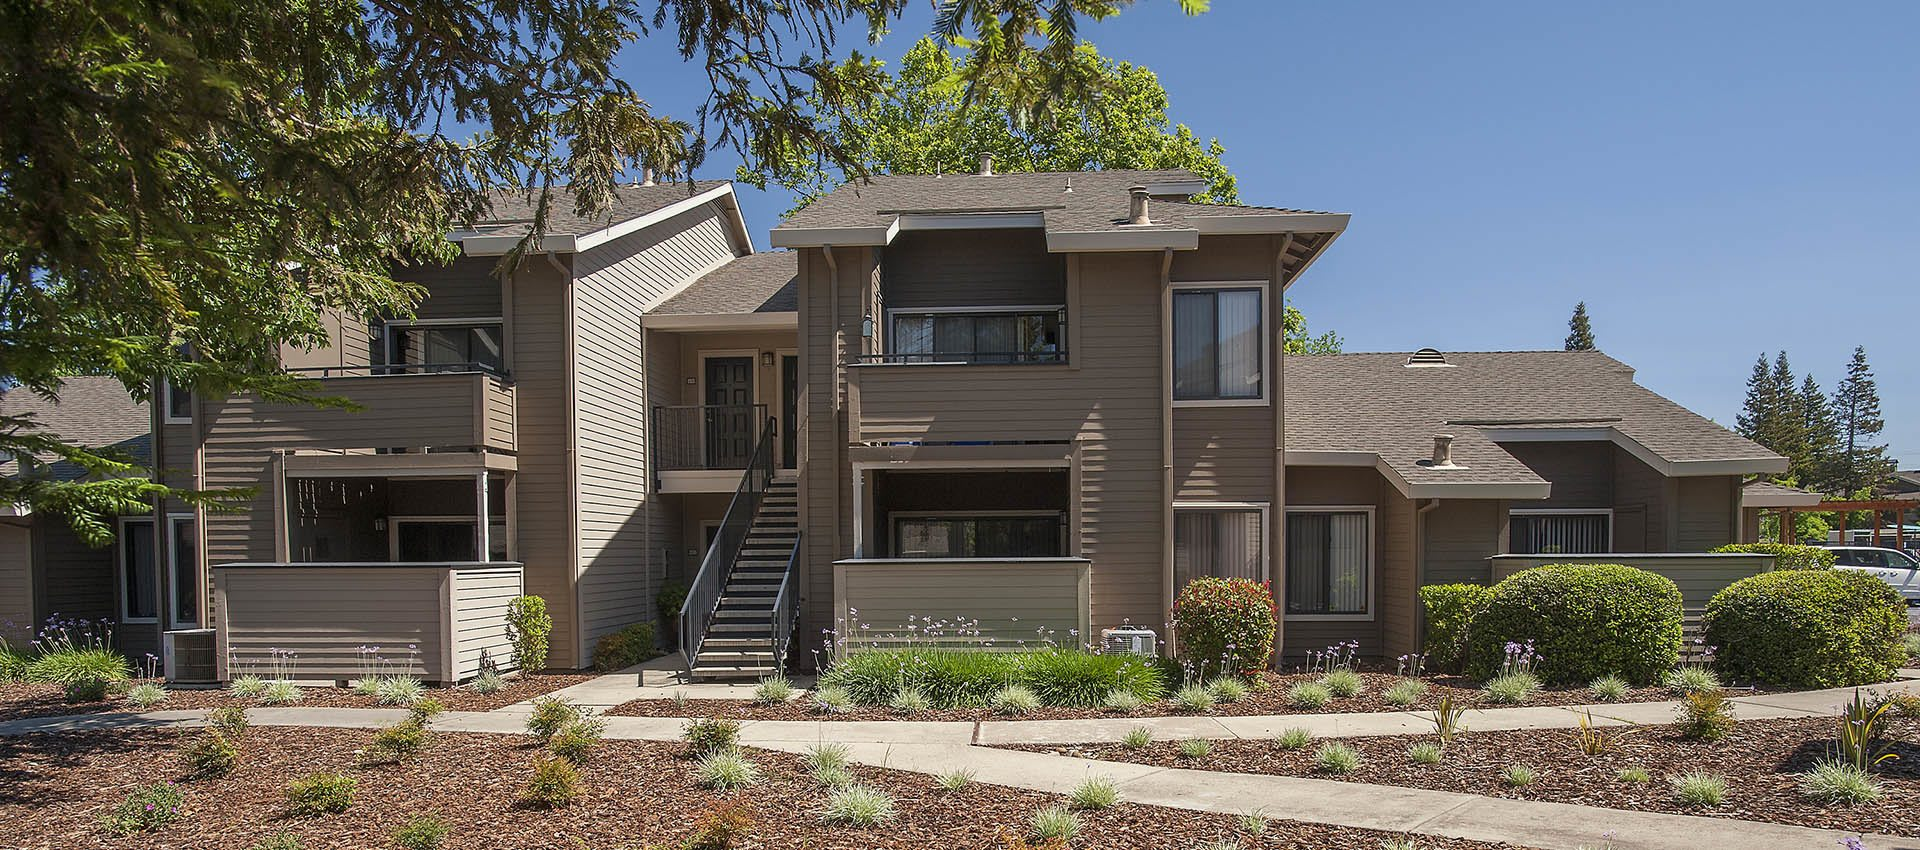 Apartment Exterior at Deer Valley Apartment Homes in Roseville, California